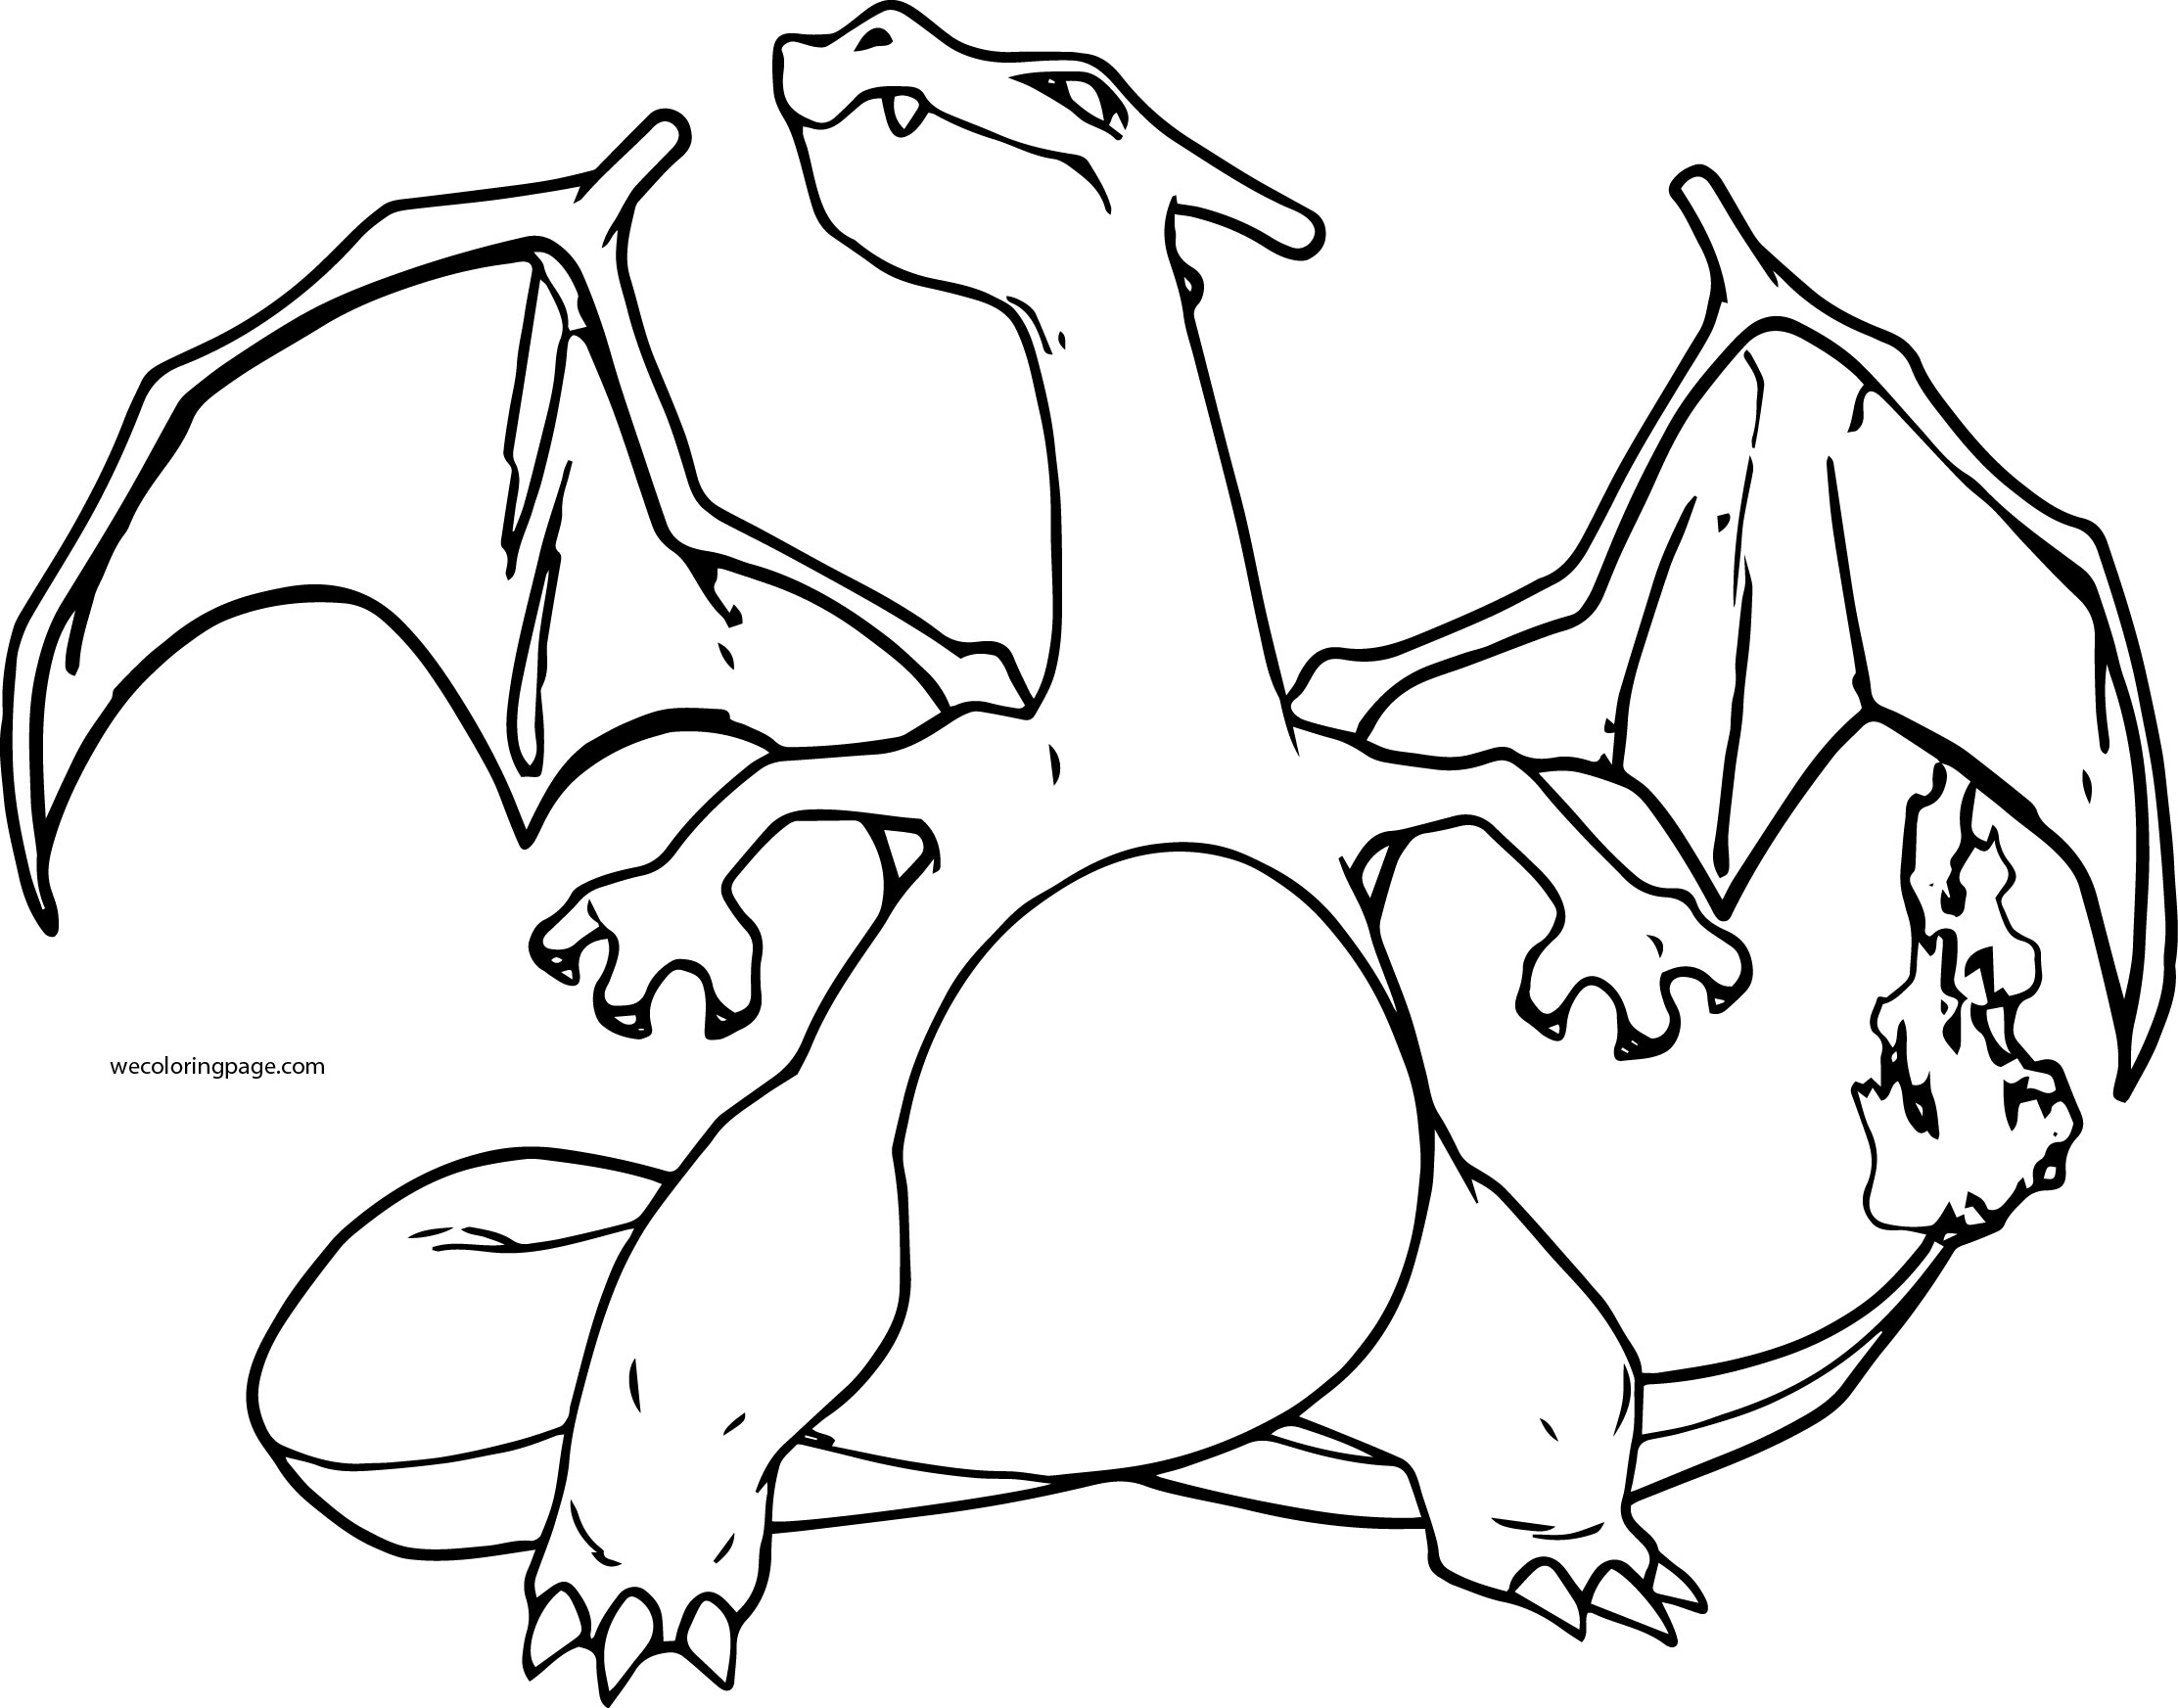 charizard coloring pages to print mega charizard coloring page best quality sheets print pages coloring charizard to